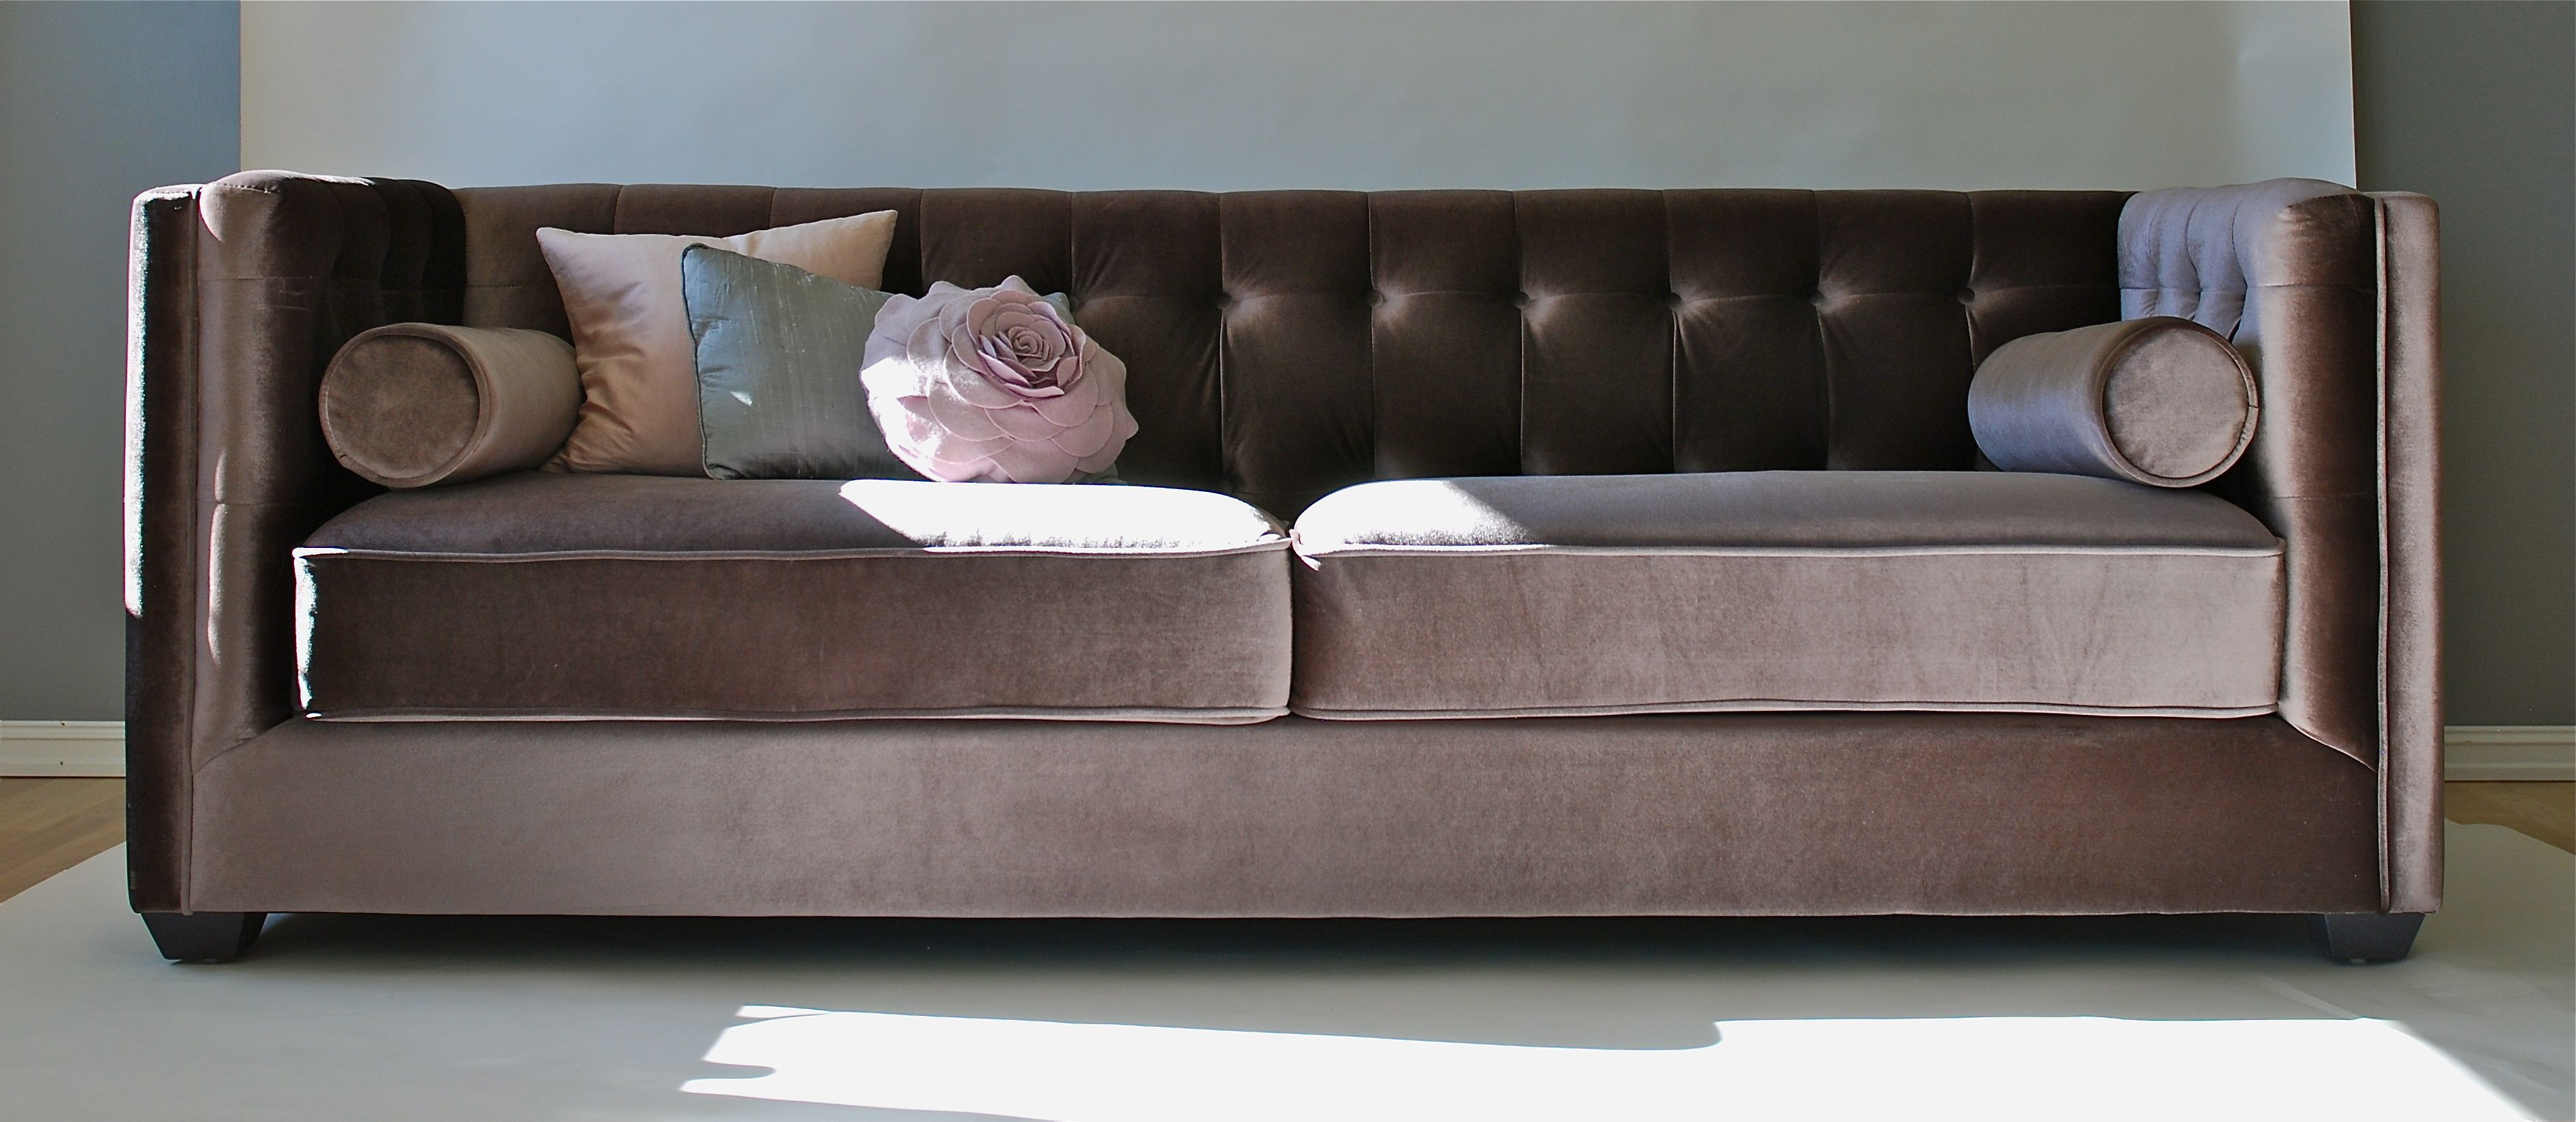 Velour Couch Lekker Sofa I Grå Brun Velour Varer Furniture